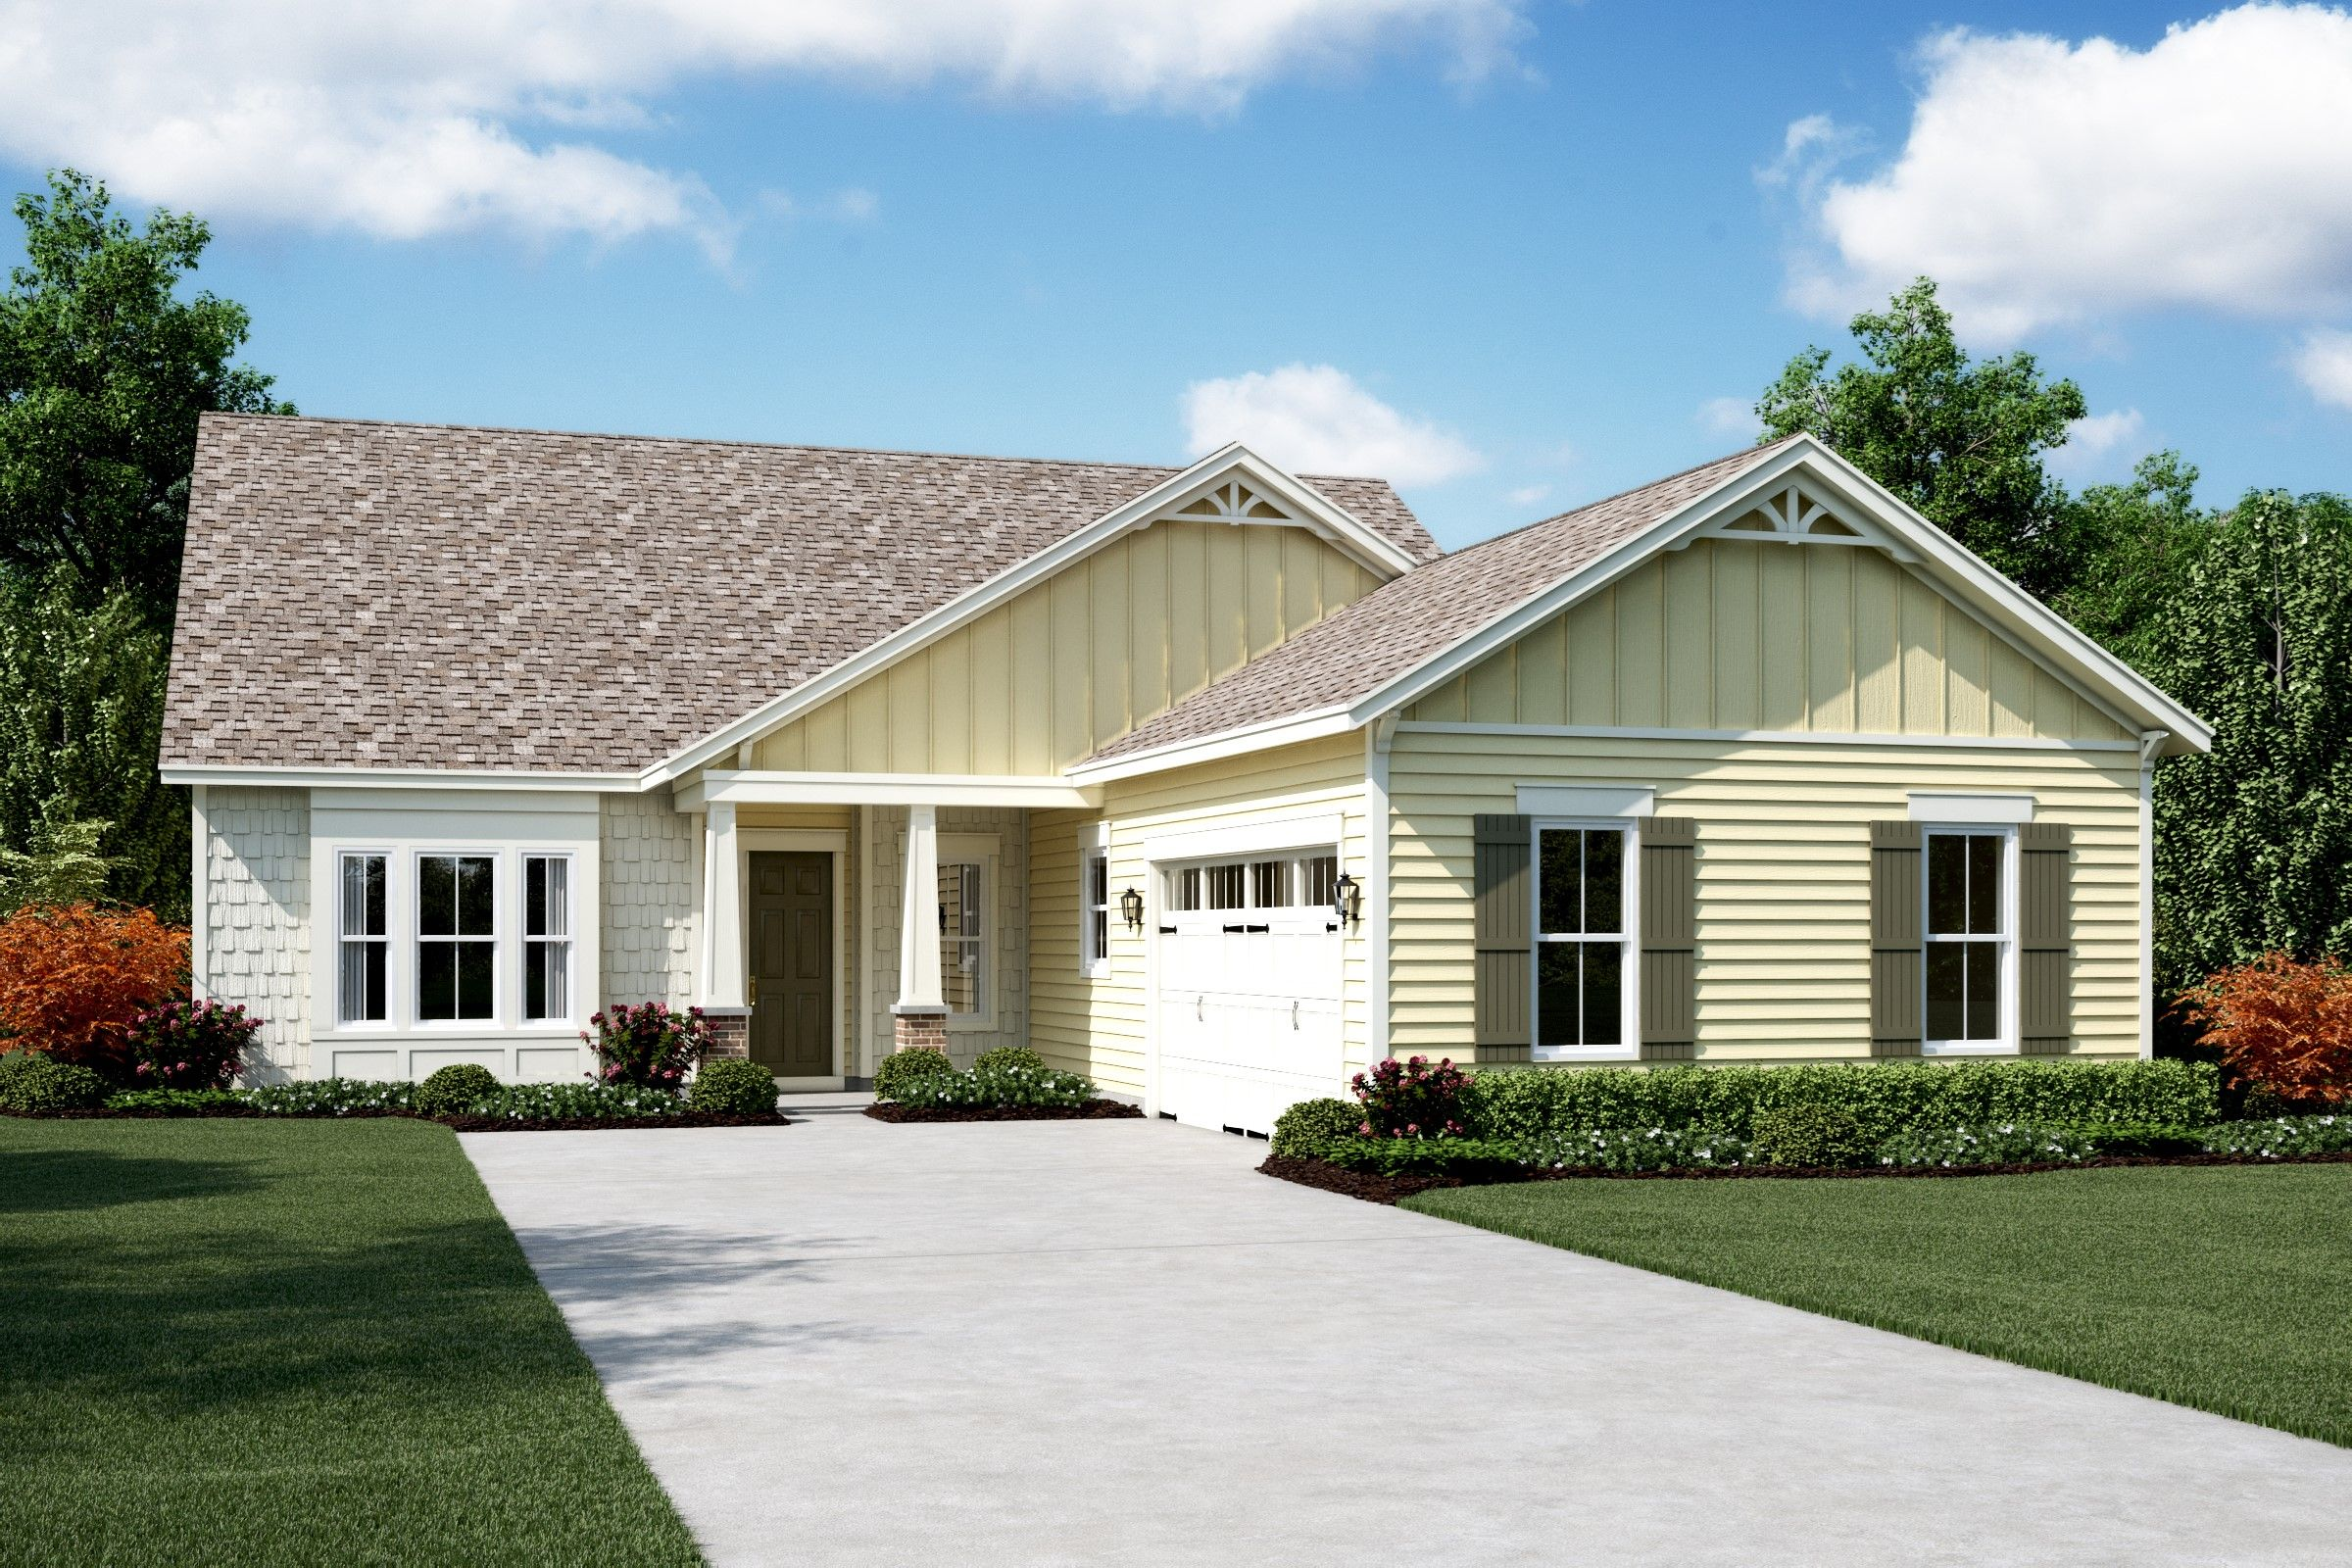 dating bluffton sc Search 60 single family homes for rent in bluffton, south carolina find bluffton apartments, condos, townhomes, single family homes, and much more on trulia.